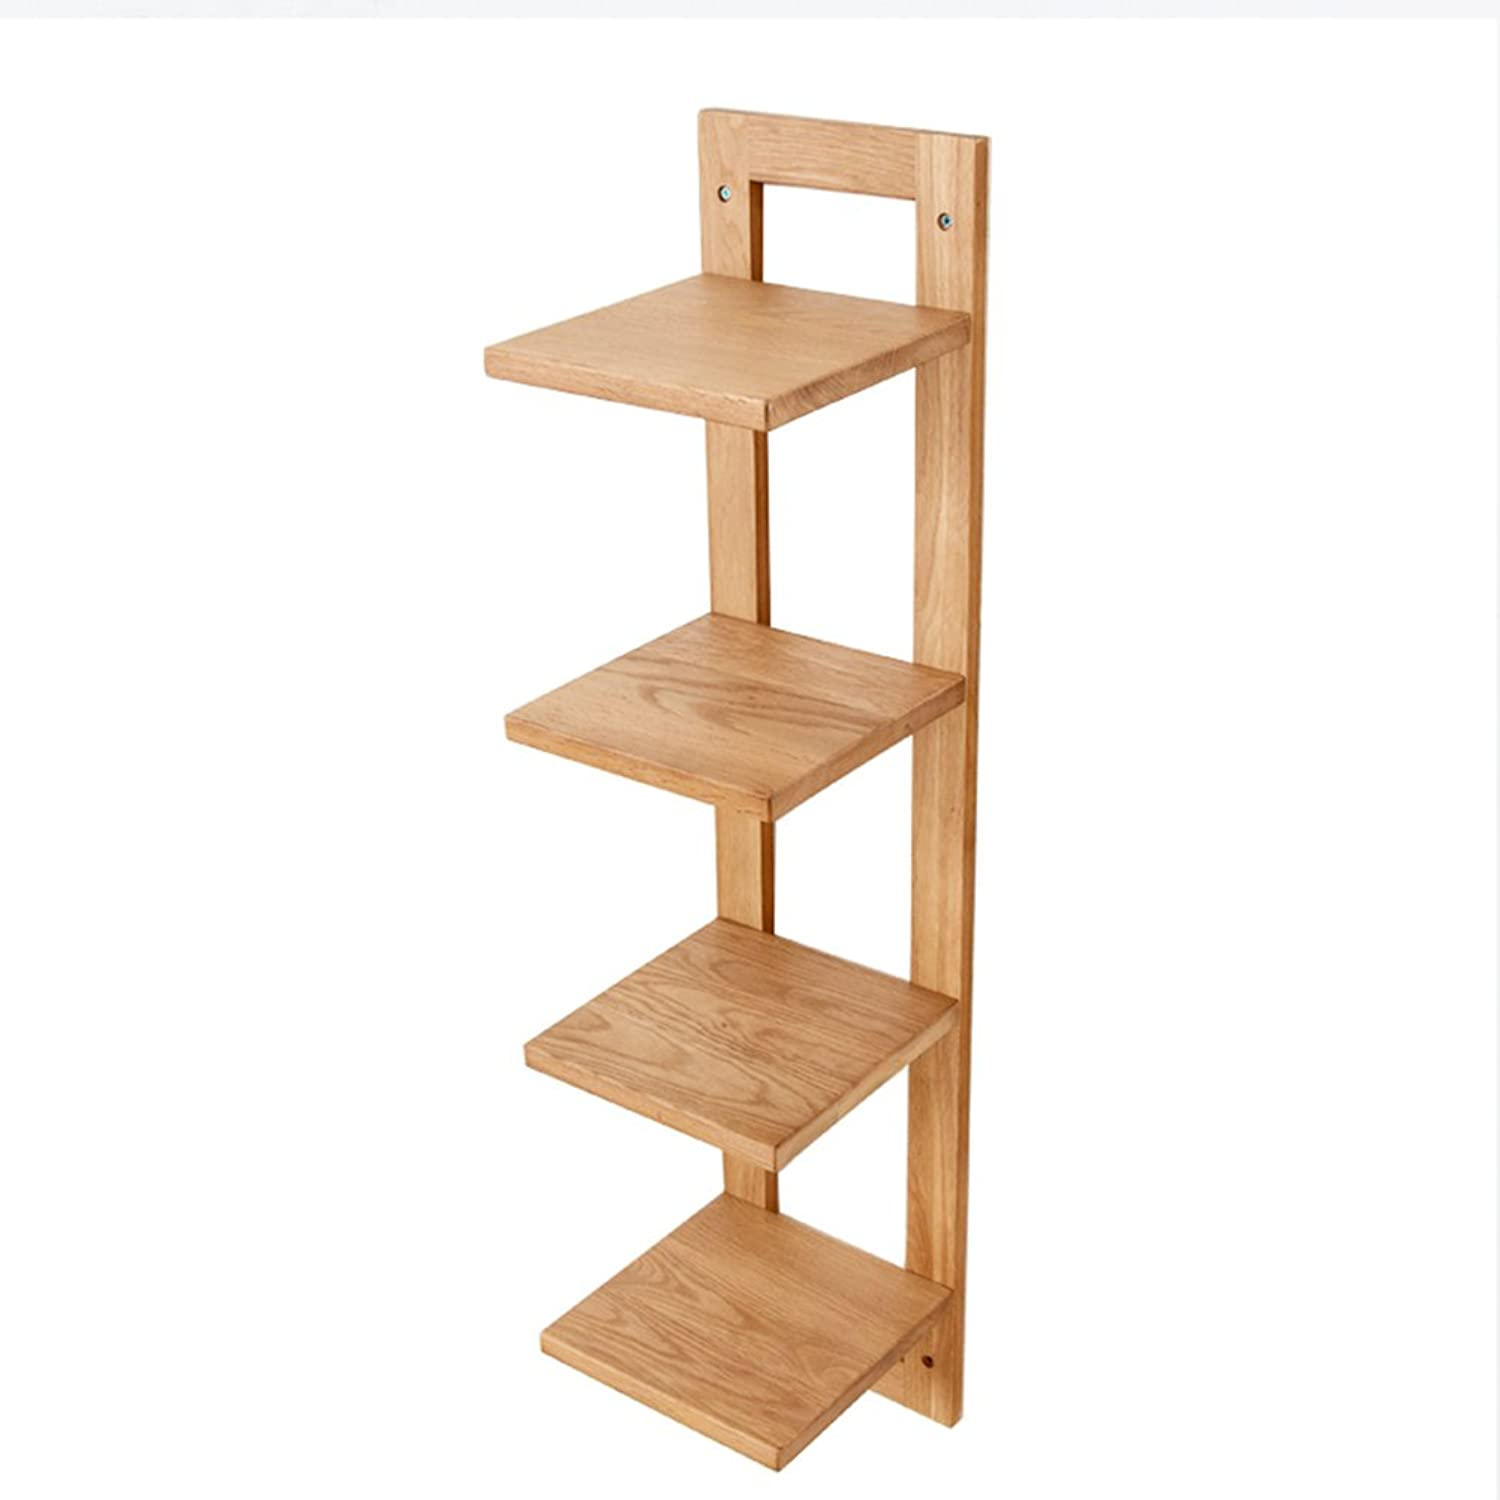 BJLWT Solid Wood Wall Mounted Racks -200x215x900mm -4 Tier Shelf Living Room TV Wall Partition Storage Rack Flower,Storage Rack (color   Wood color)